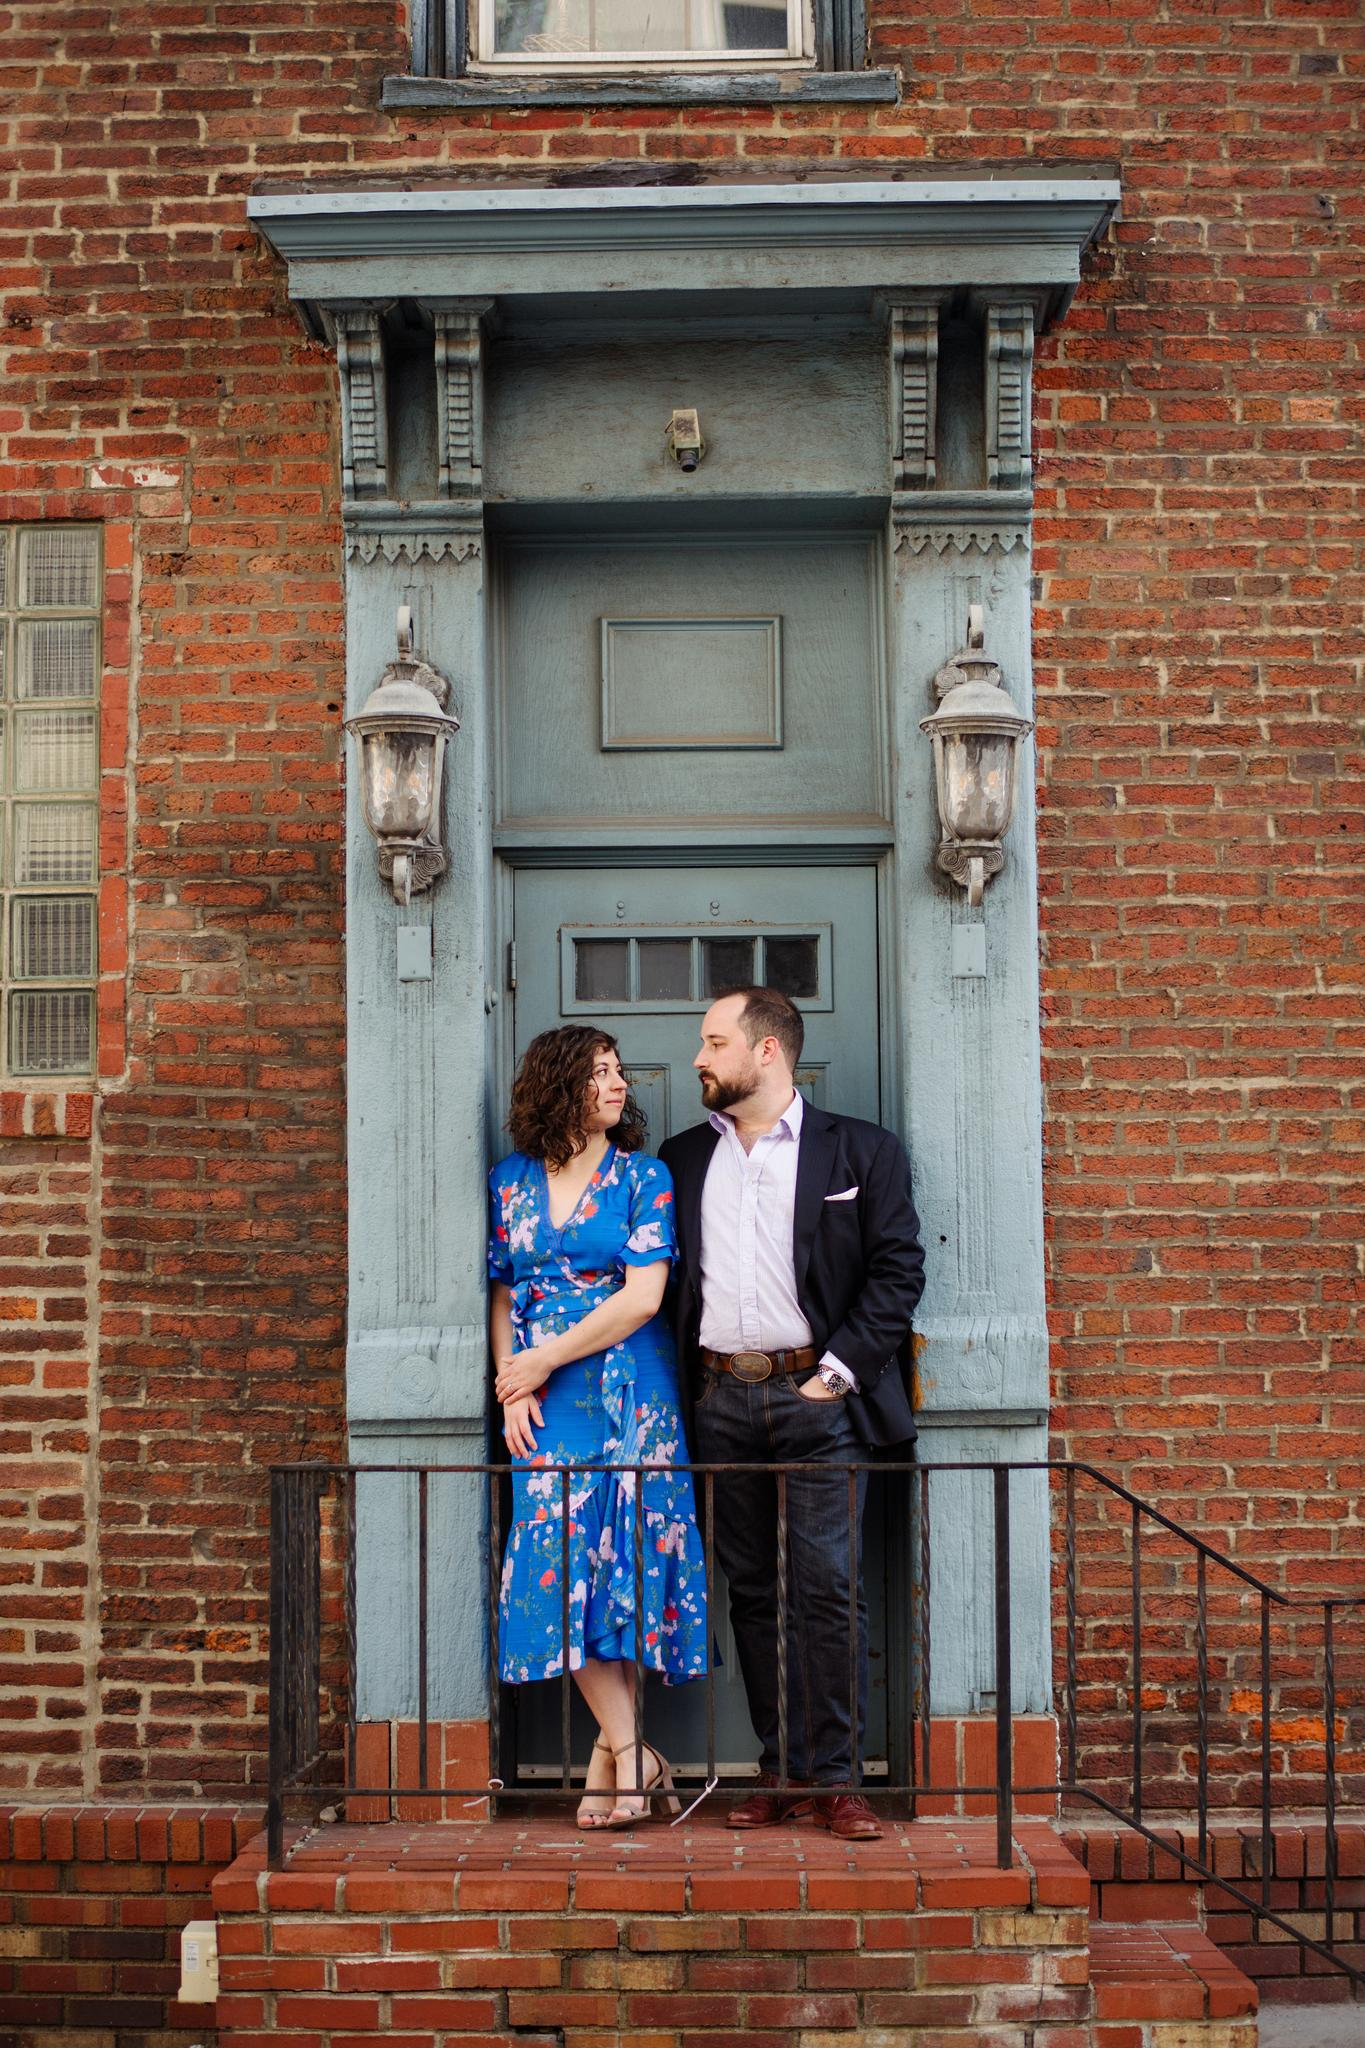 A few shots from our engagement photo shoot. Photo: http://michaelwillphotography.com.